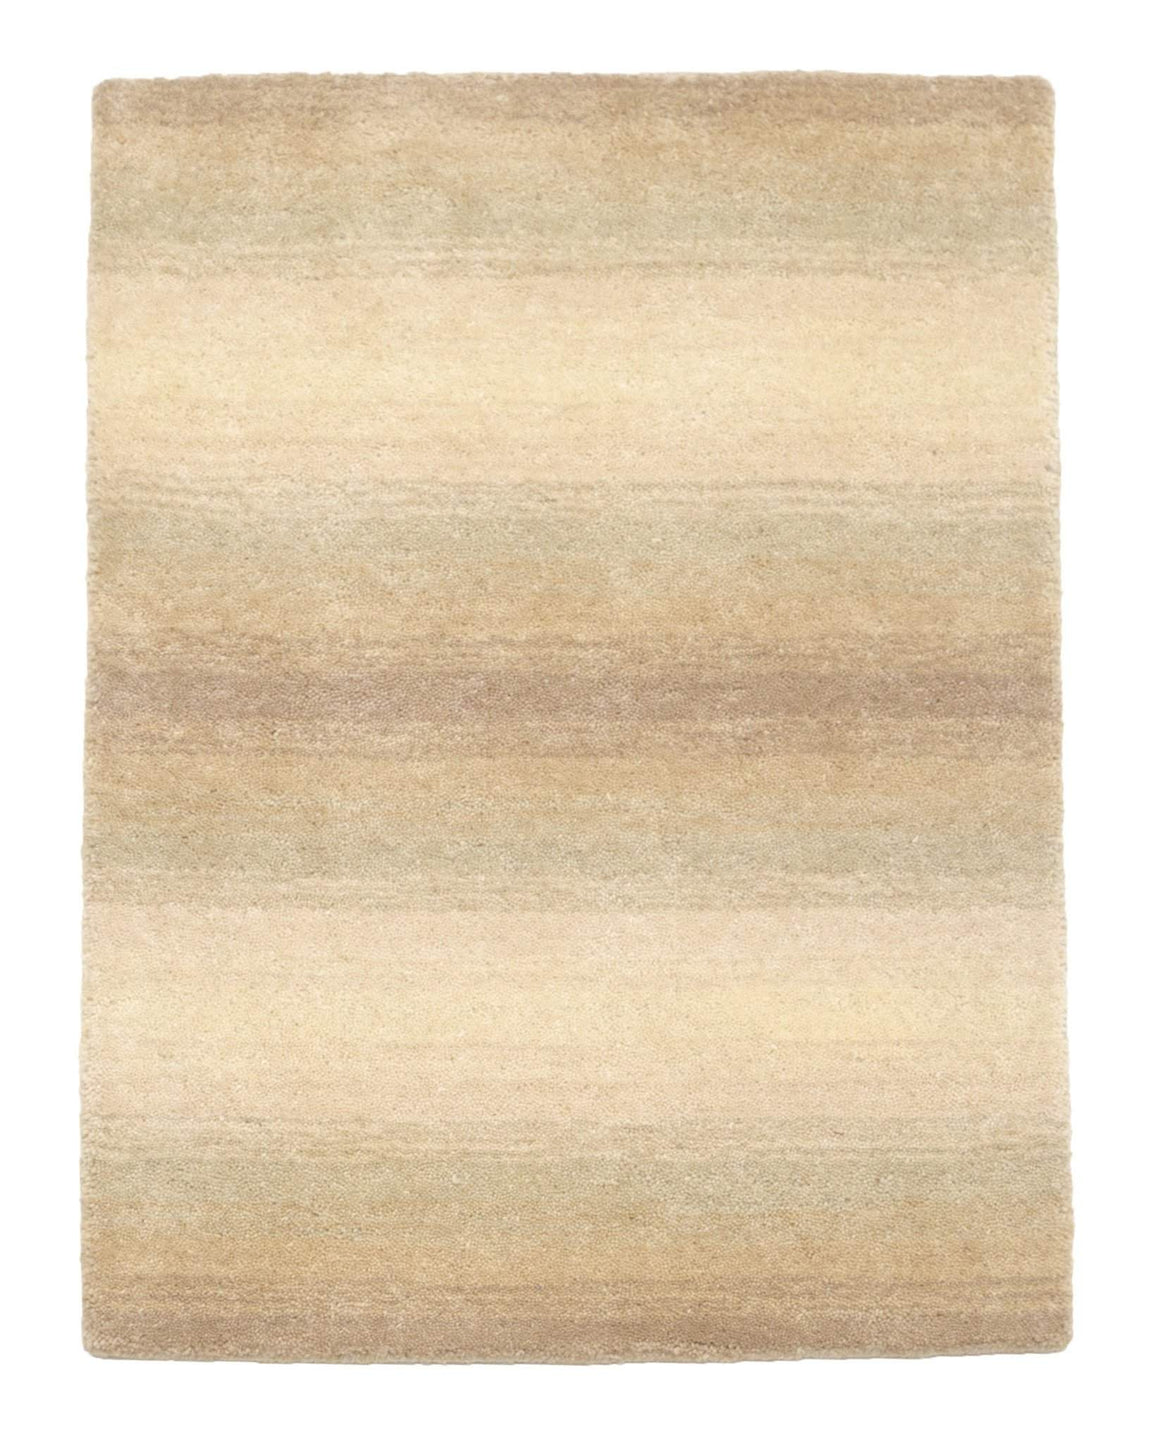 2' x 3' Sahara Desert Wool Small Rug by Rug Shop and More Area Rugs - Rug Shop and More